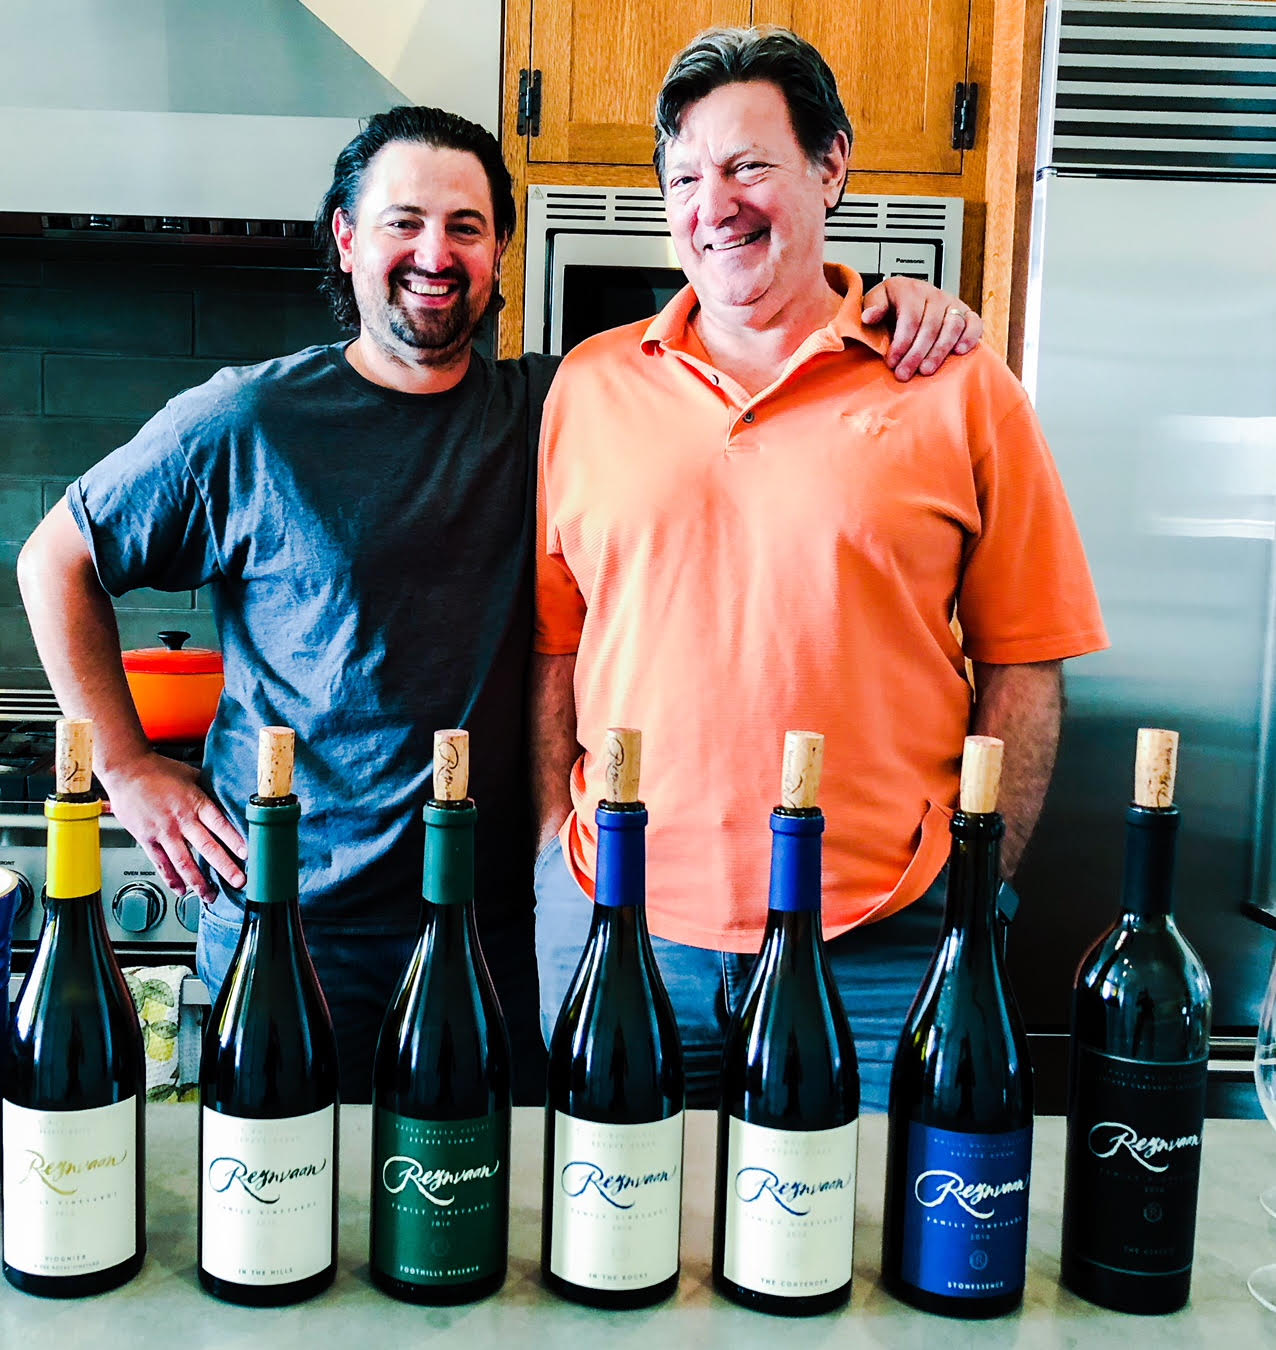 One of the great families in Washington wine, the Reynvaans have produced one of the best new lineups in the state (Fall 2018 release).